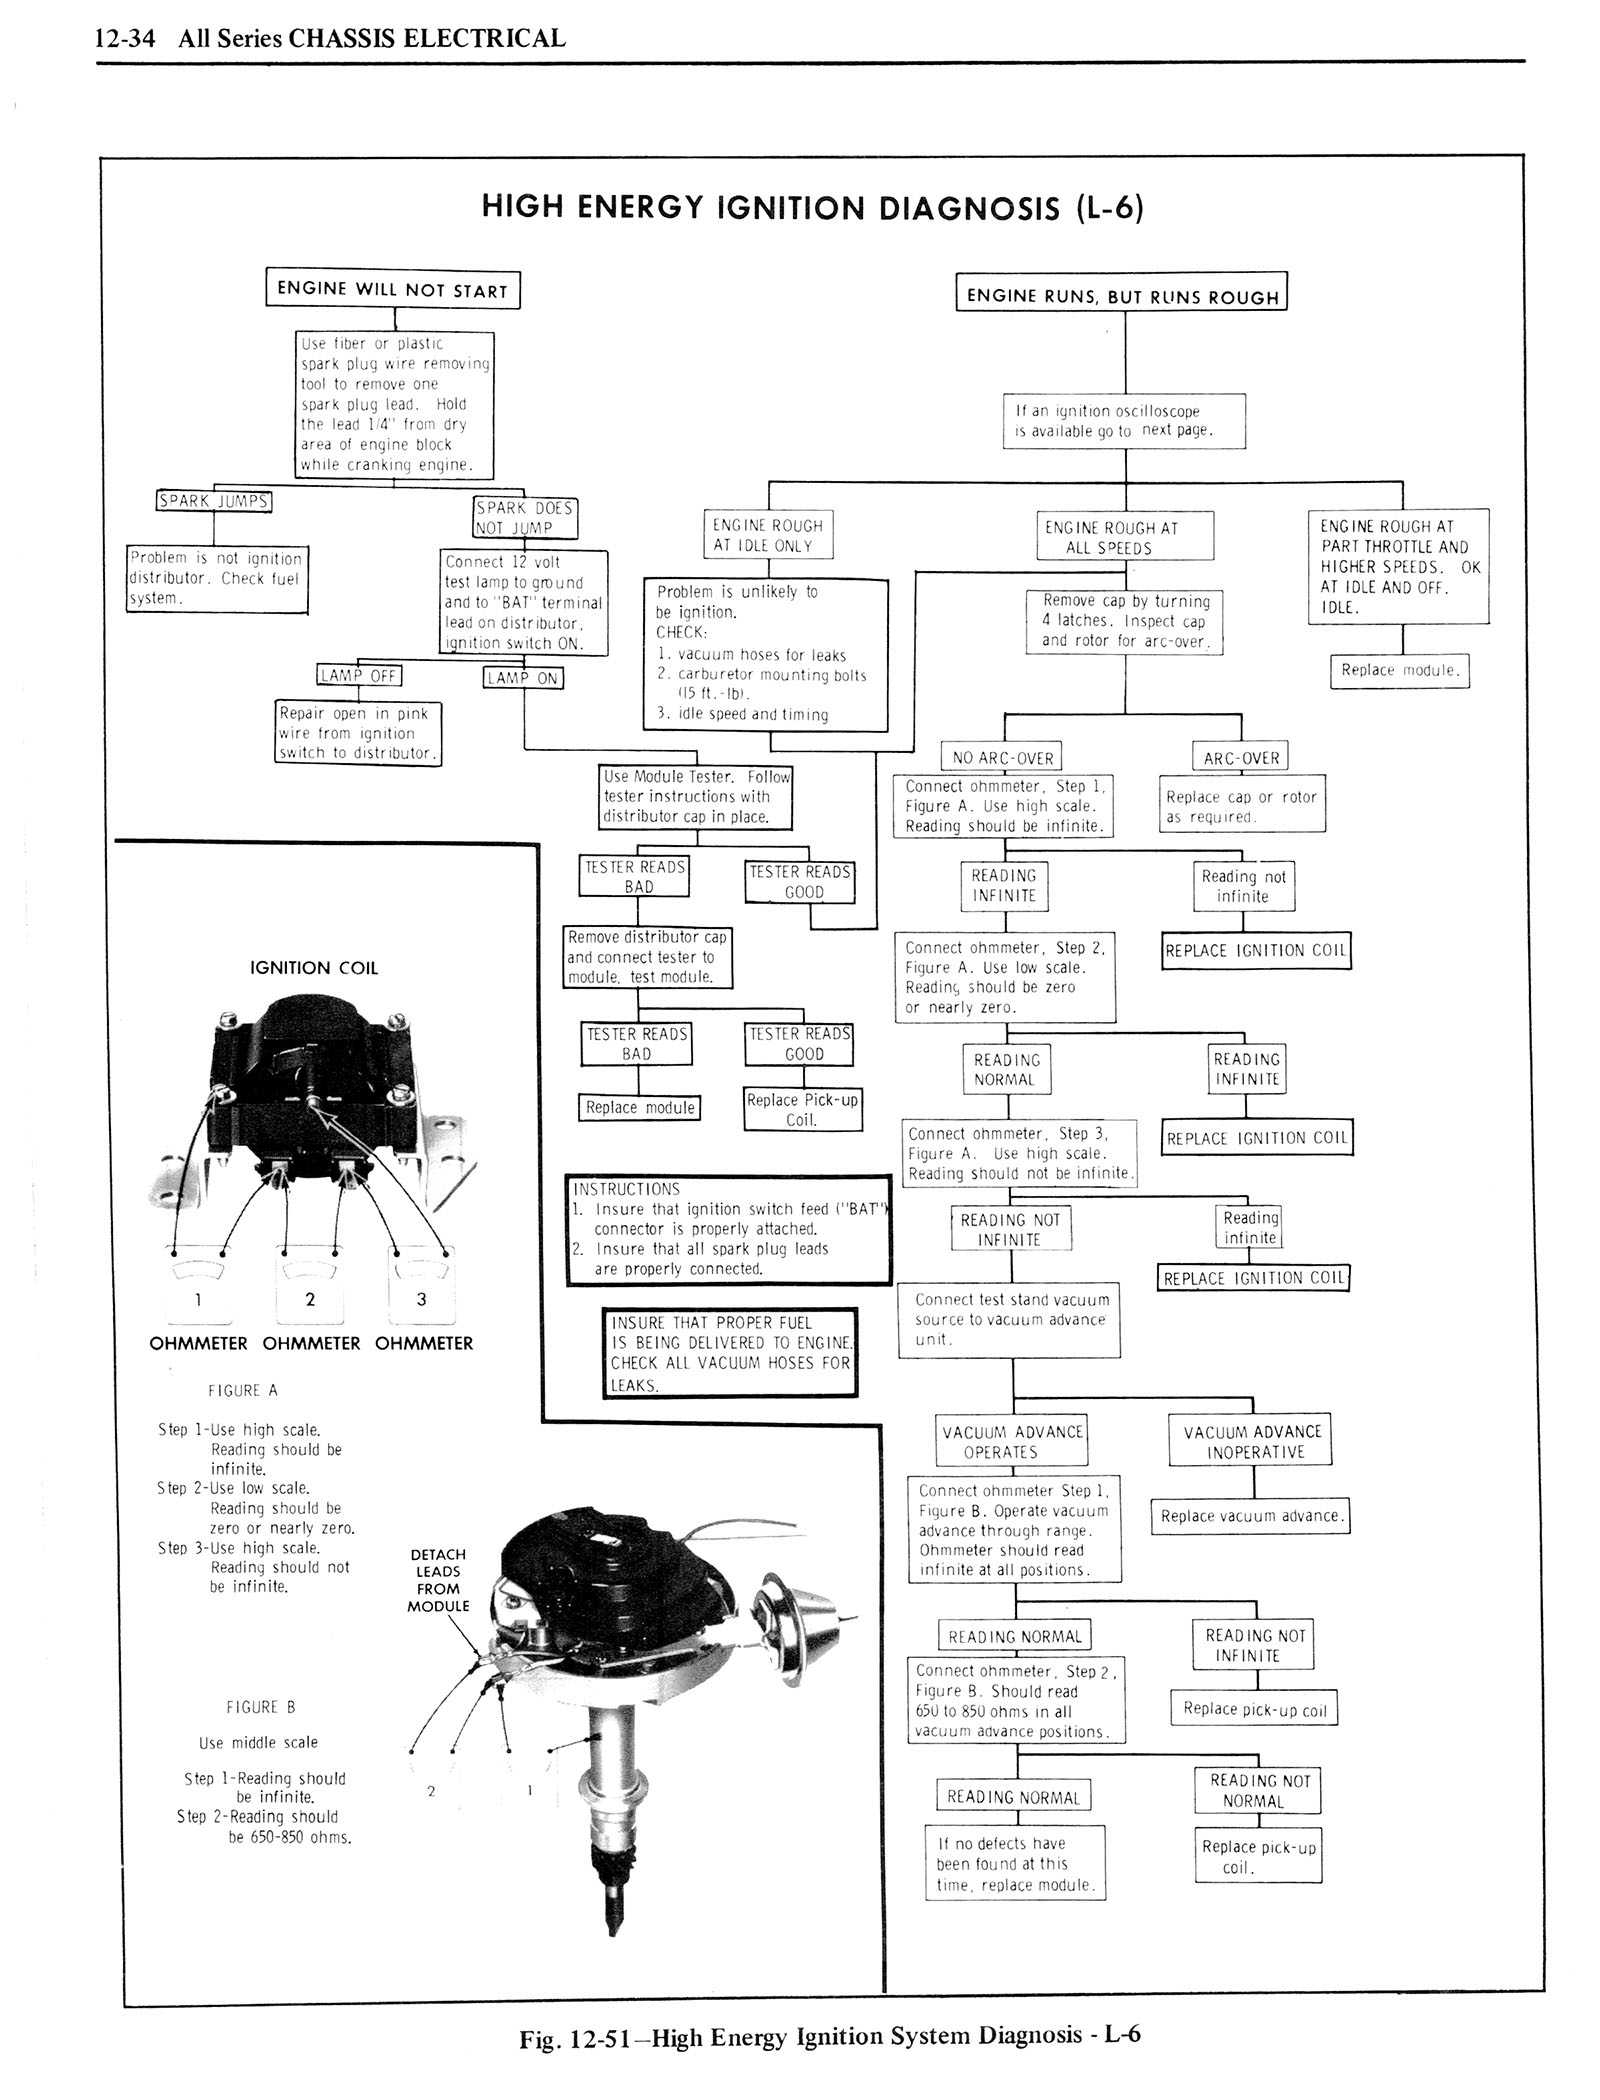 1976 Oldsmobile Service Manual page 1154 of 1390